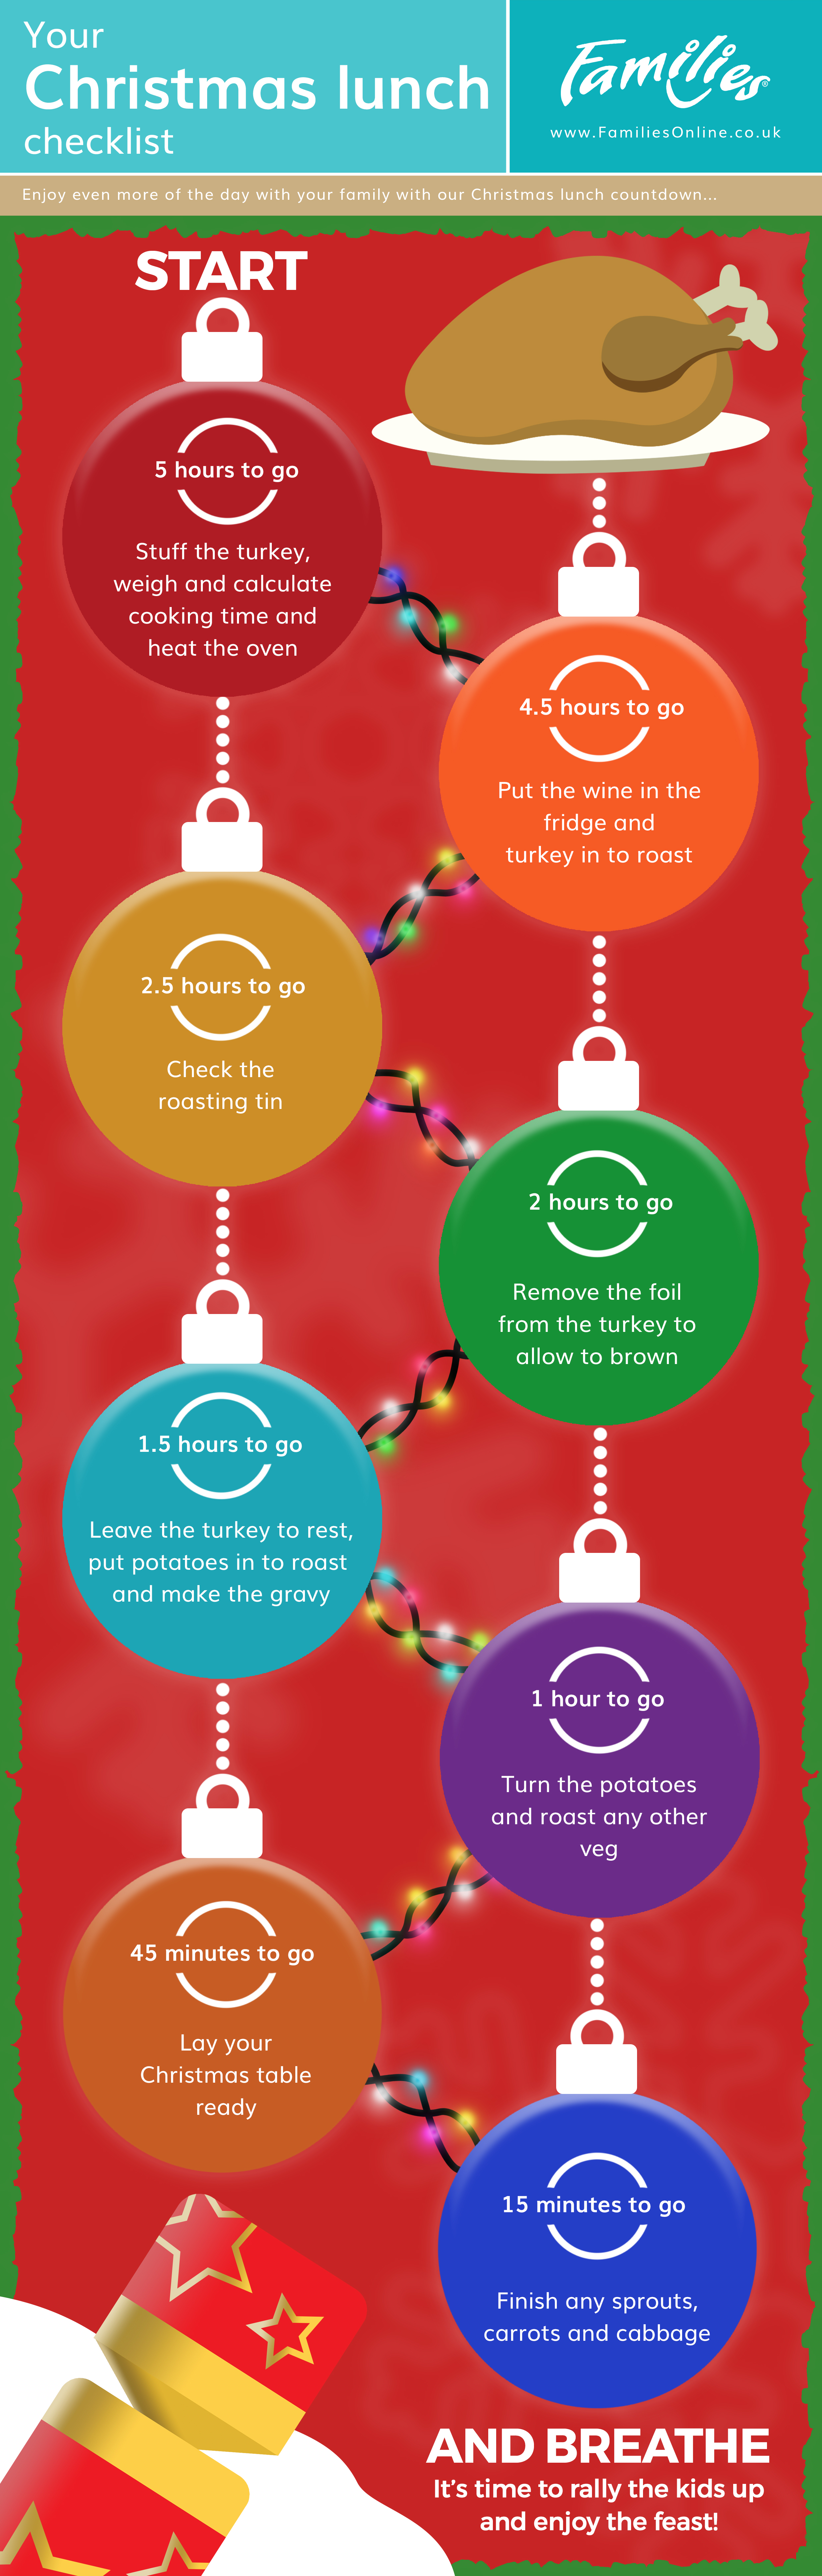 prepare for a stress free christmas. christmas lunch checklist